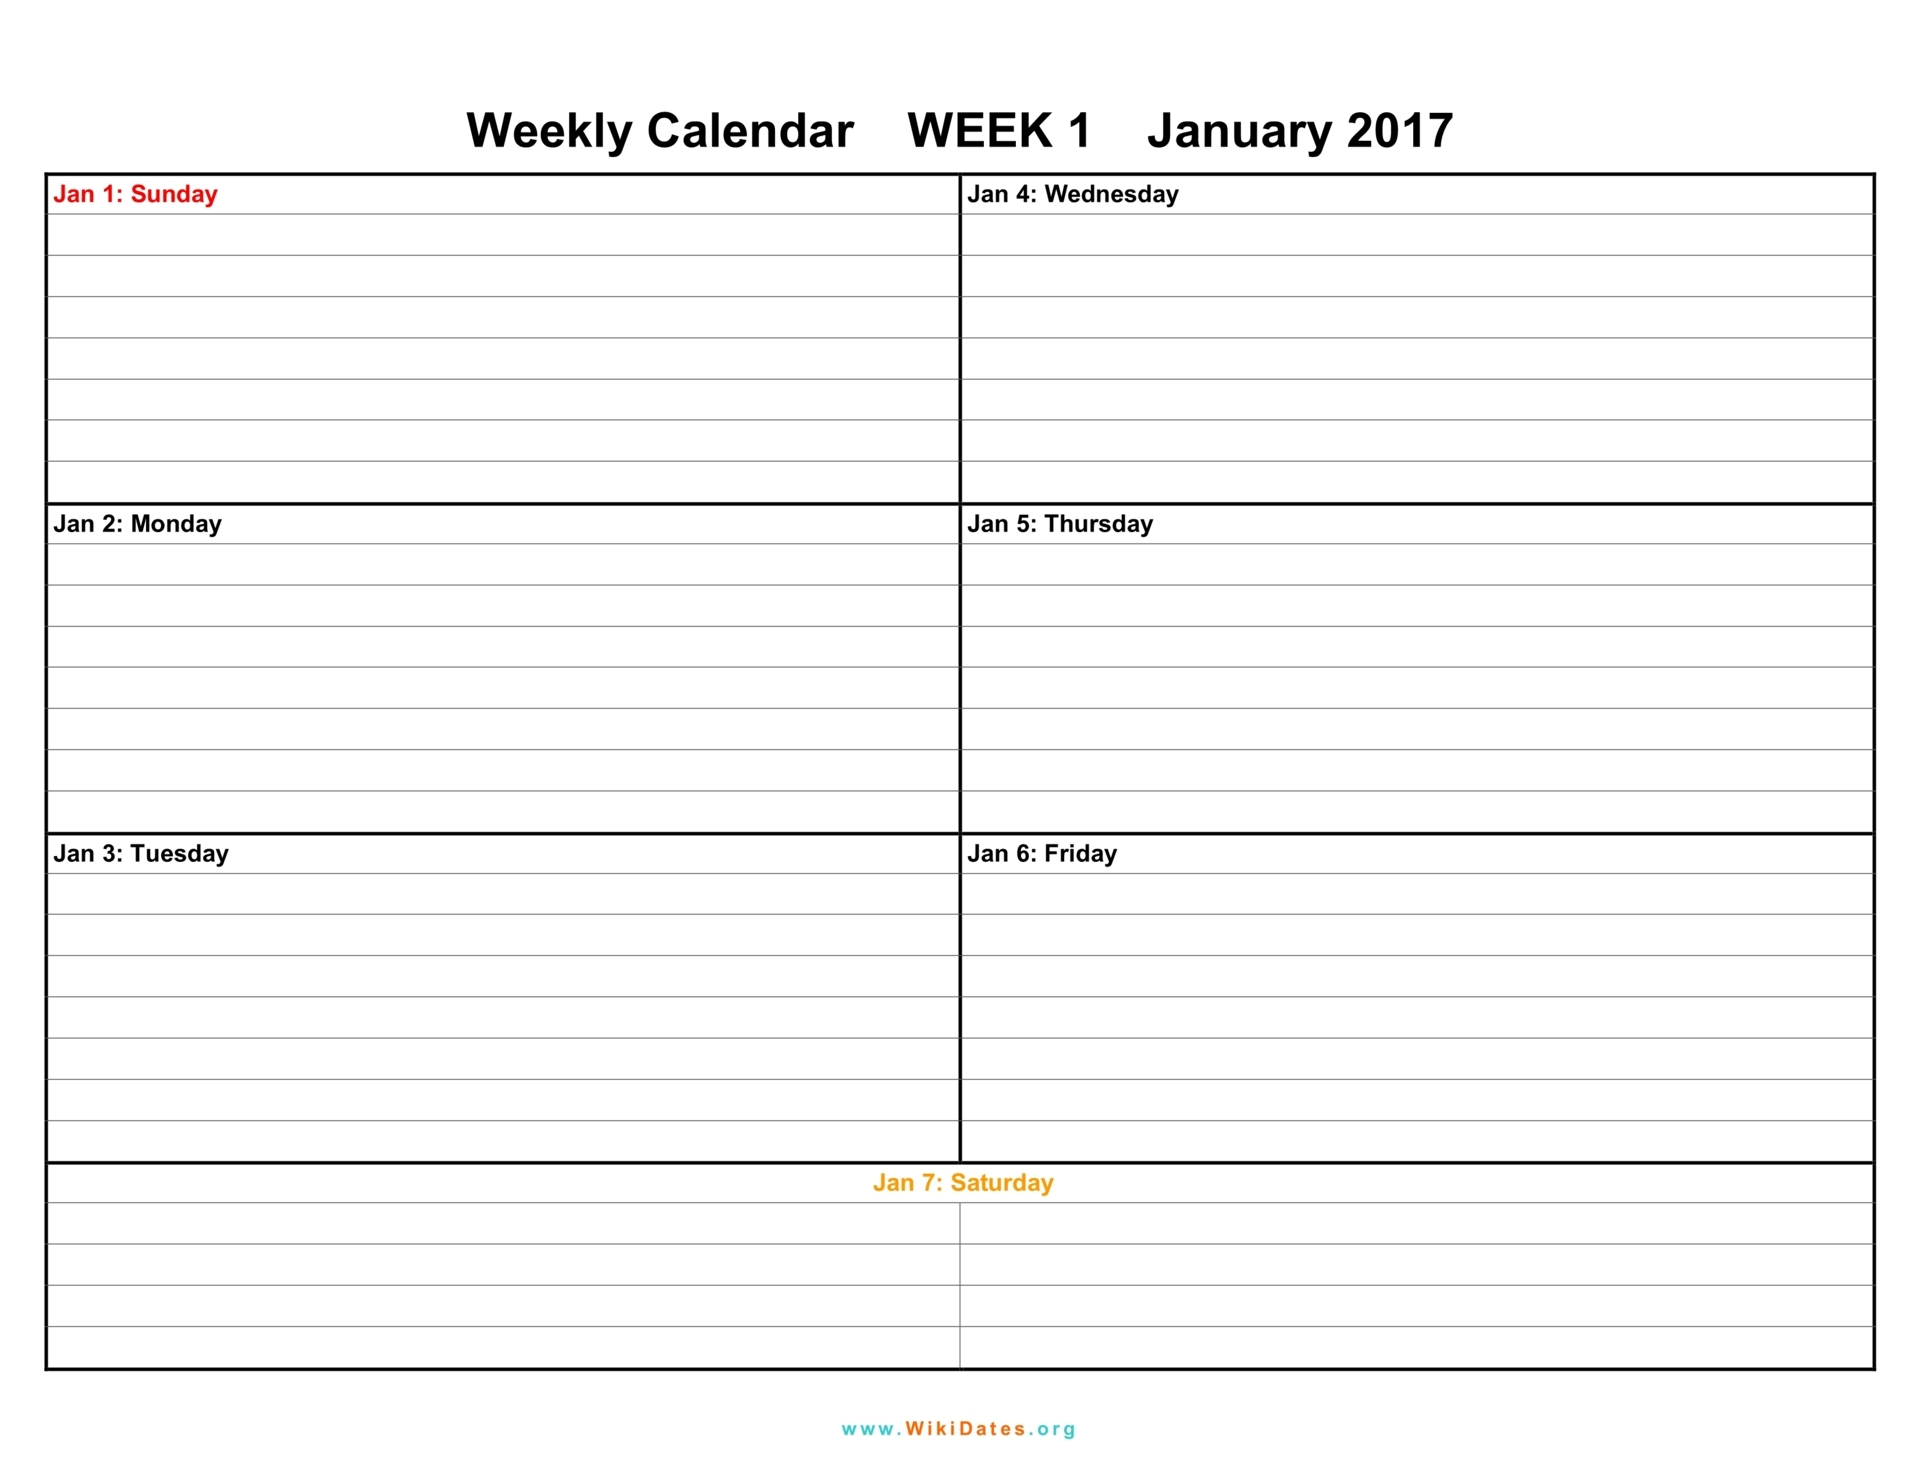 Weekly Calendar - Download weekly calendar 2017 and 2018 ...